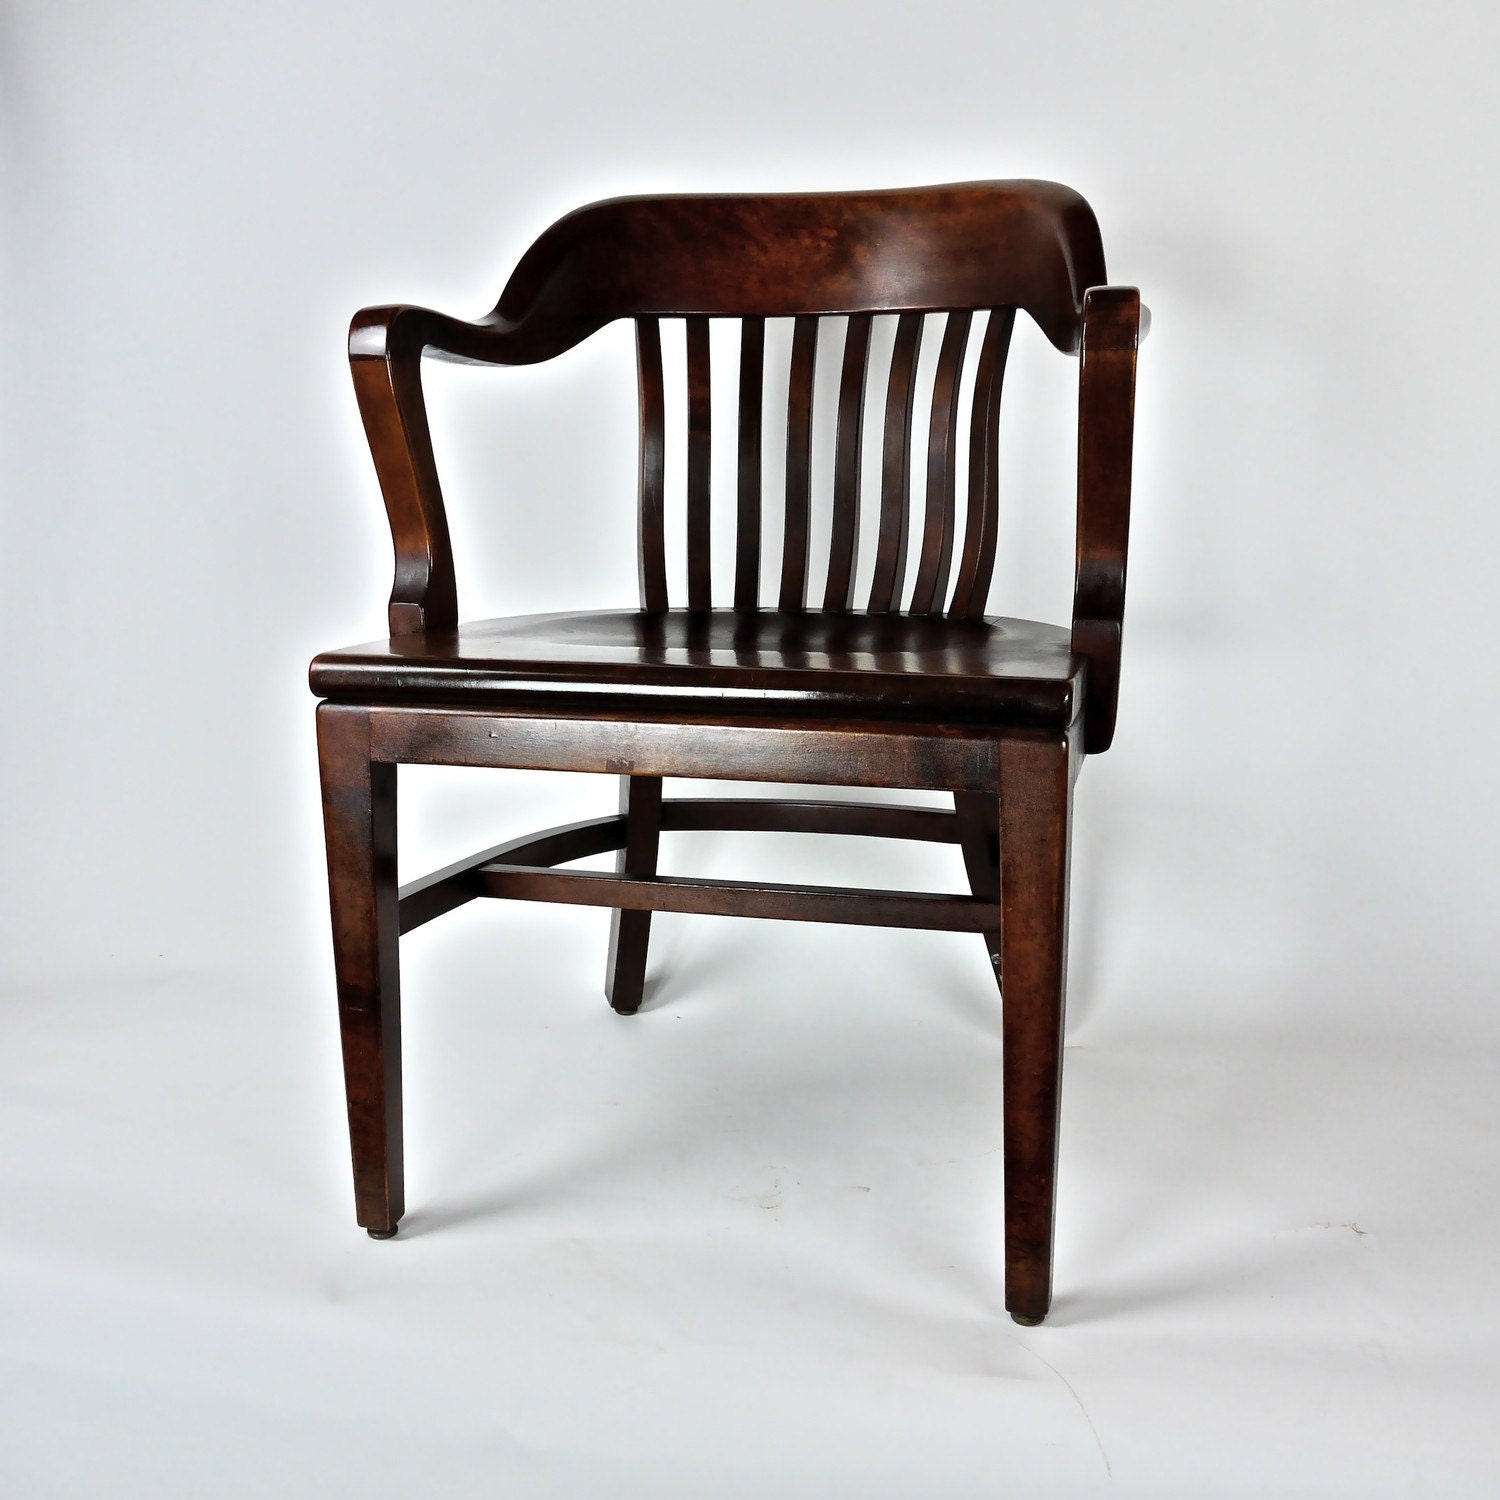 Antique Post War Wooden fice Library Chair